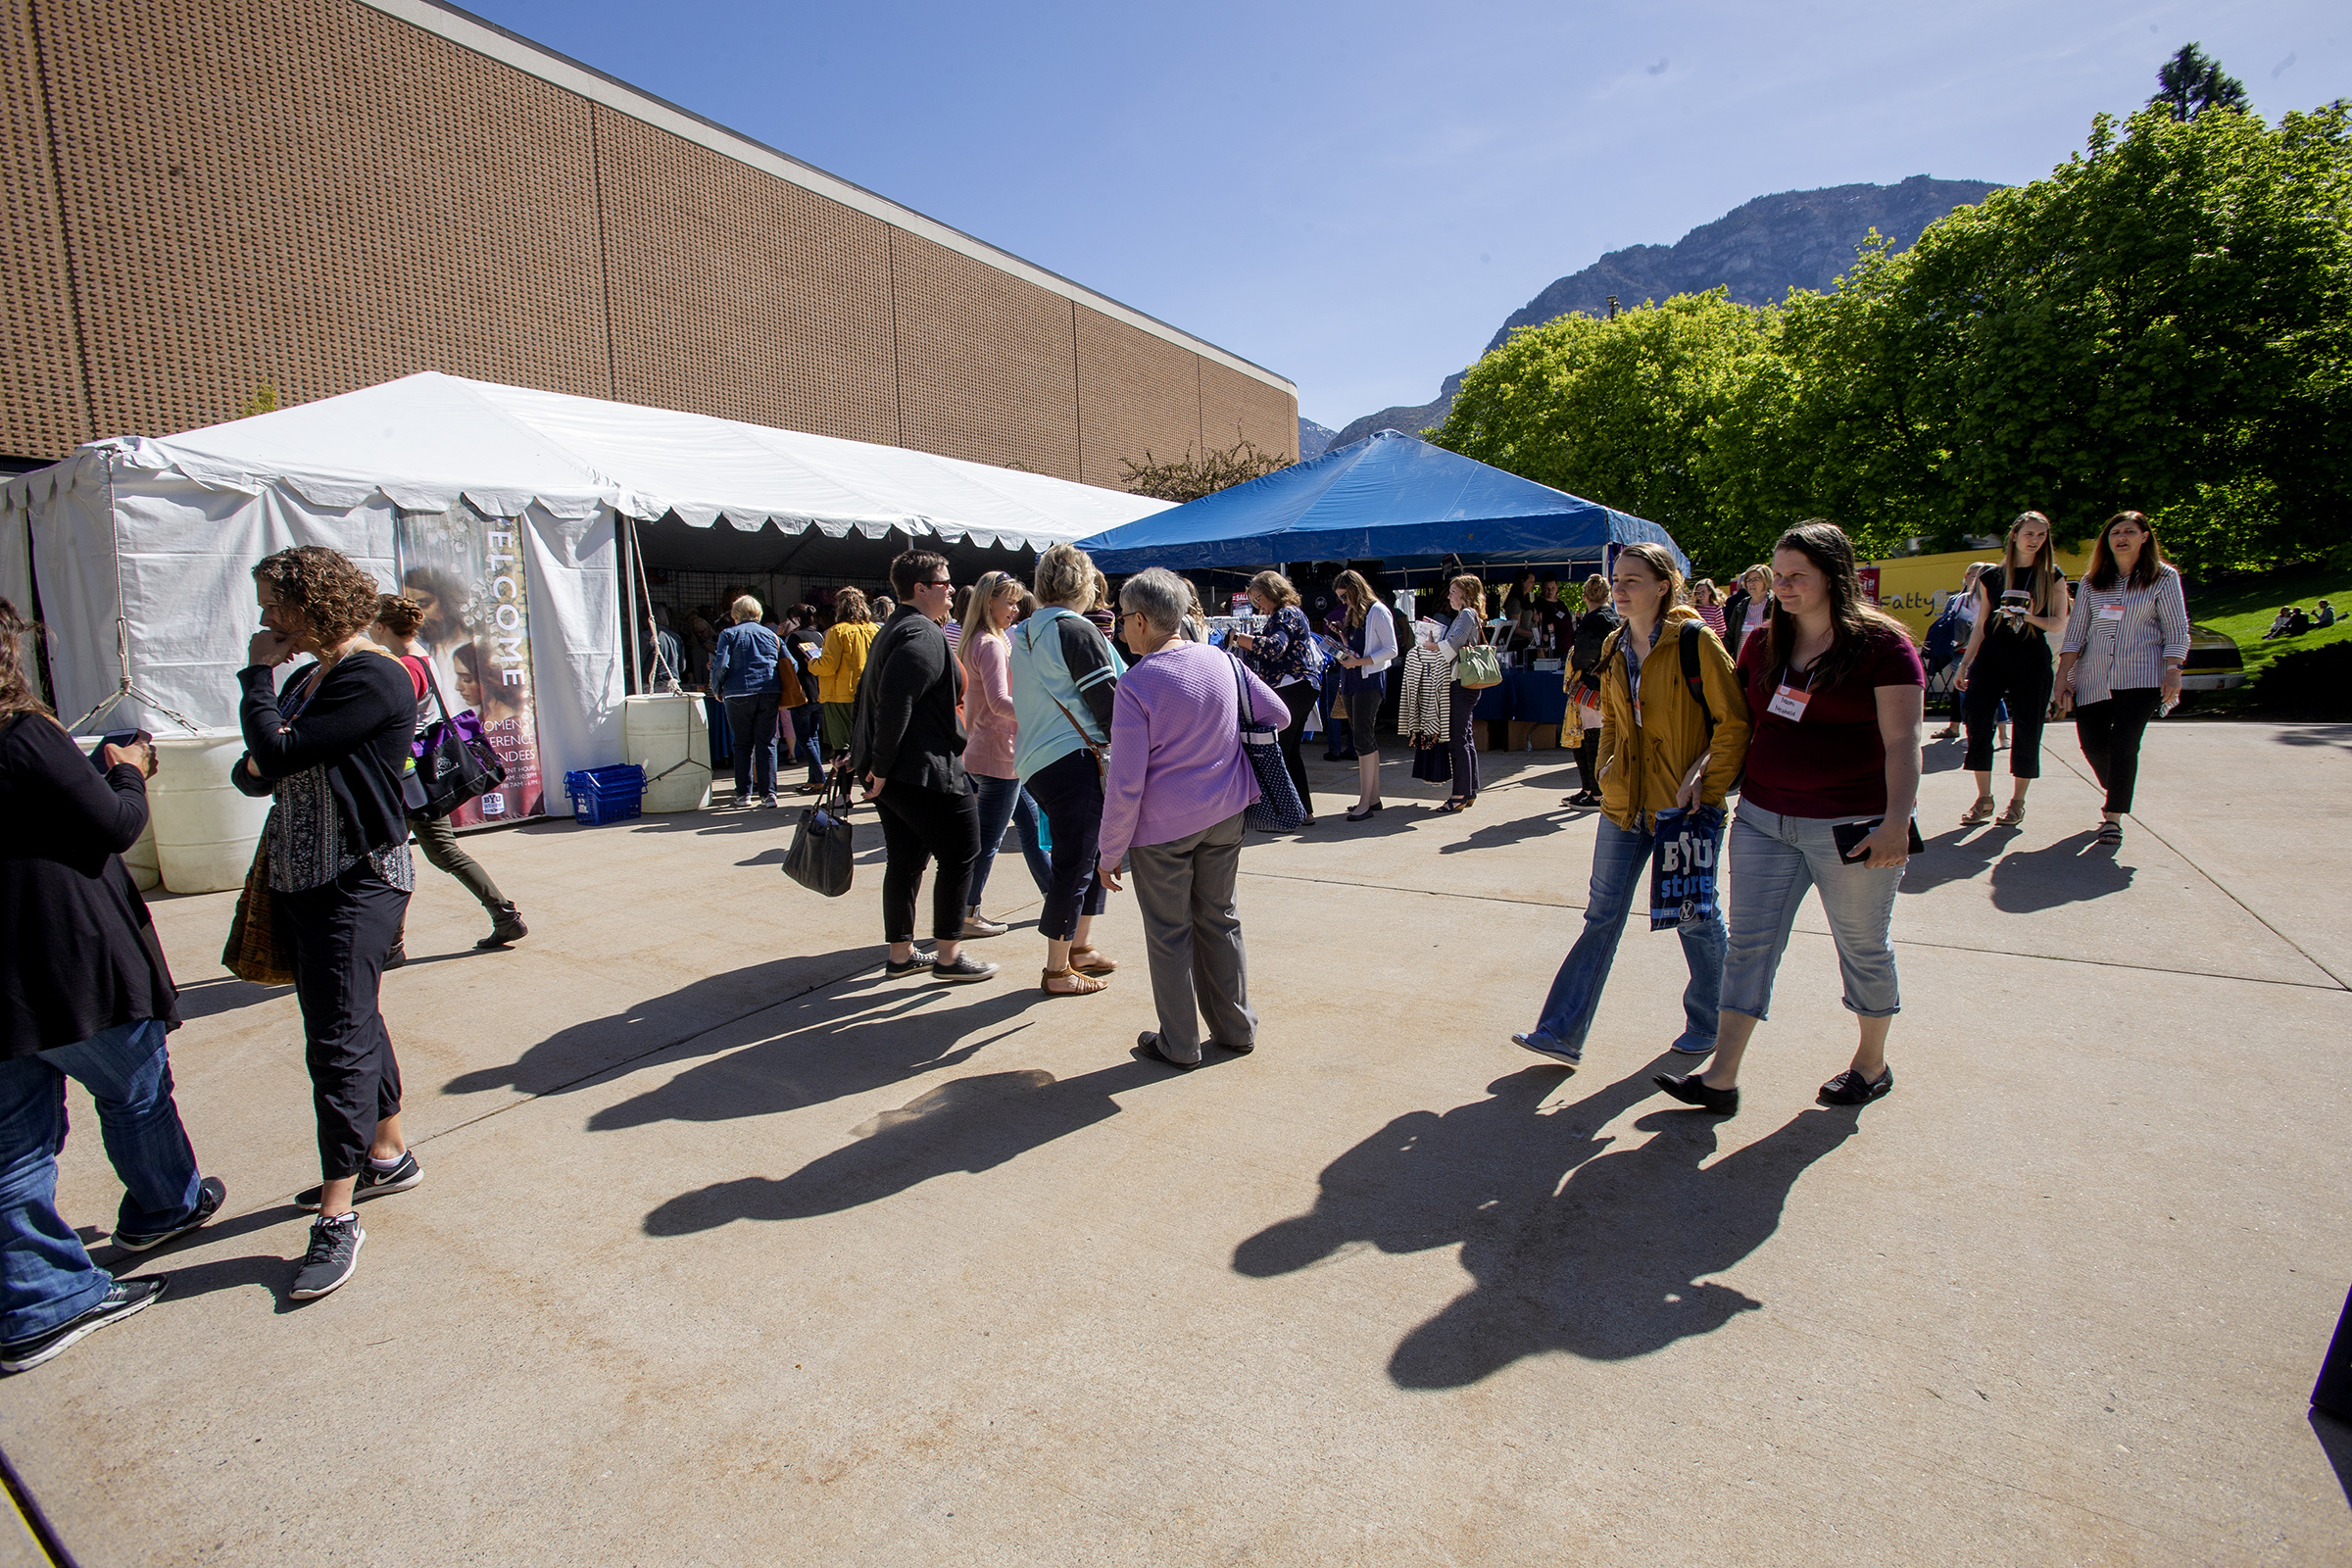 Women take part in Women's Conference at BYU in Provo, Utah, on Friday, May 3, 2019.